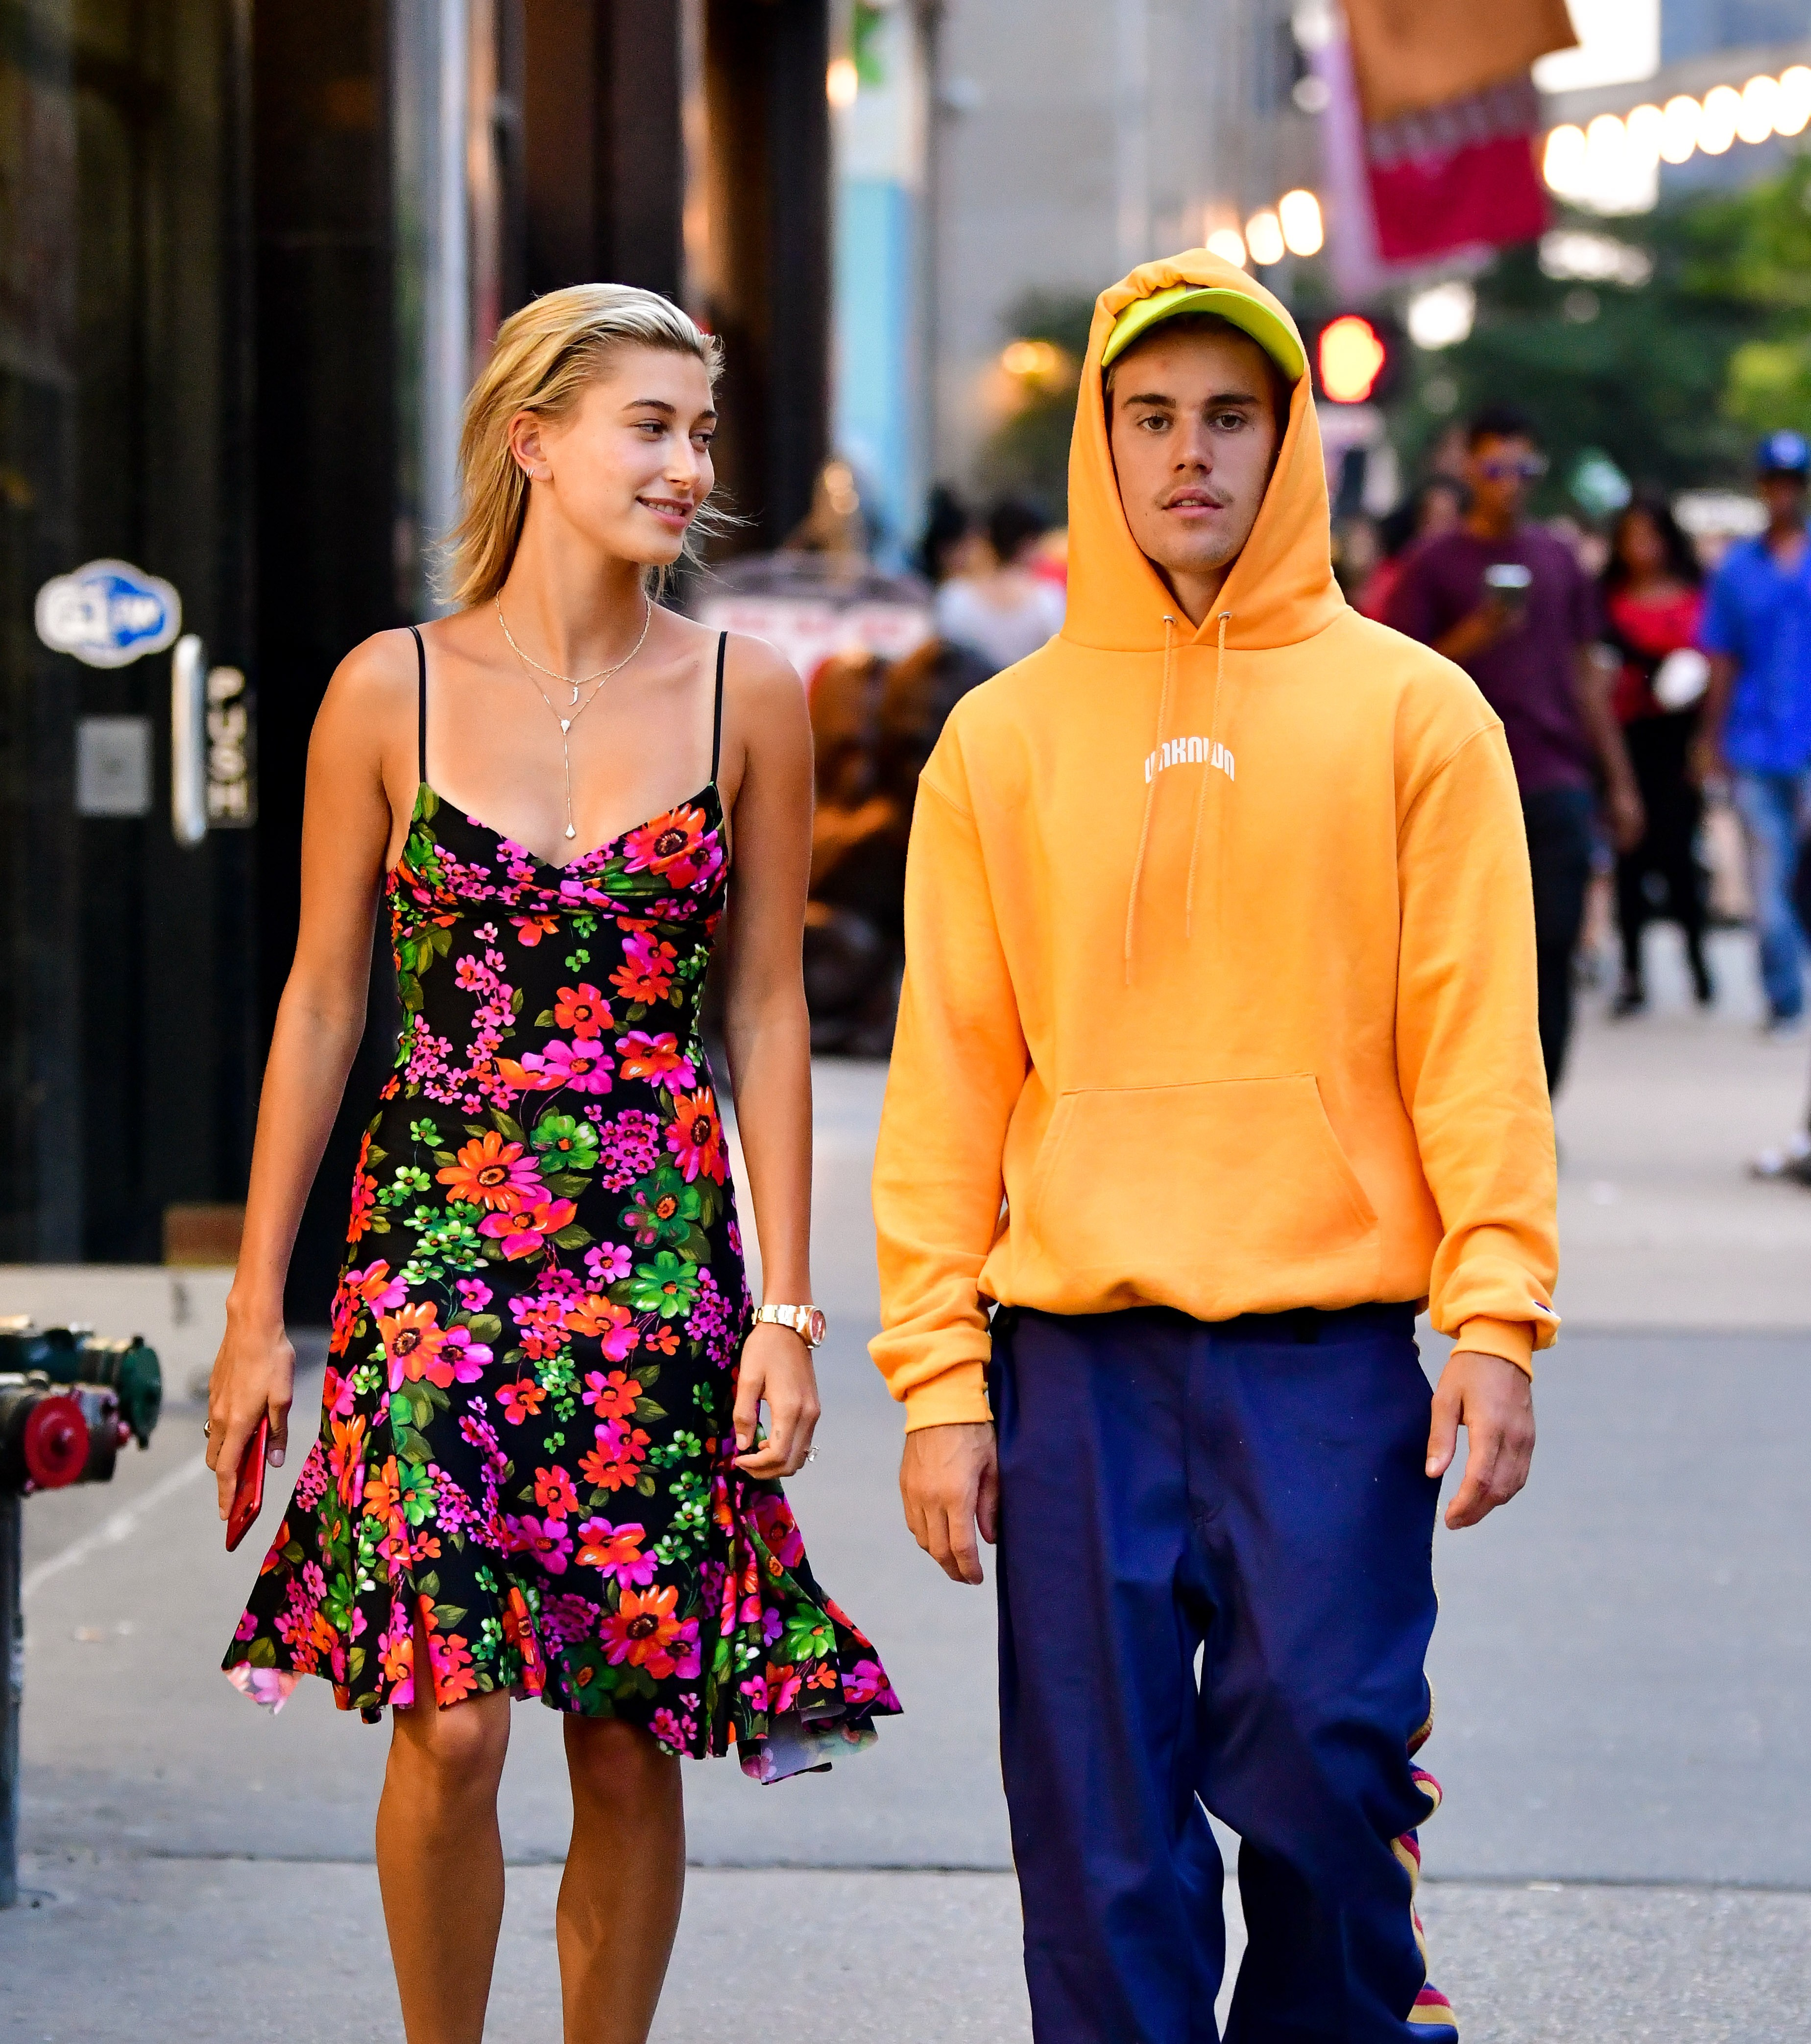 justin-bieber-applying-for-us-citizenship-before-marrying-hailey-baldwin-report